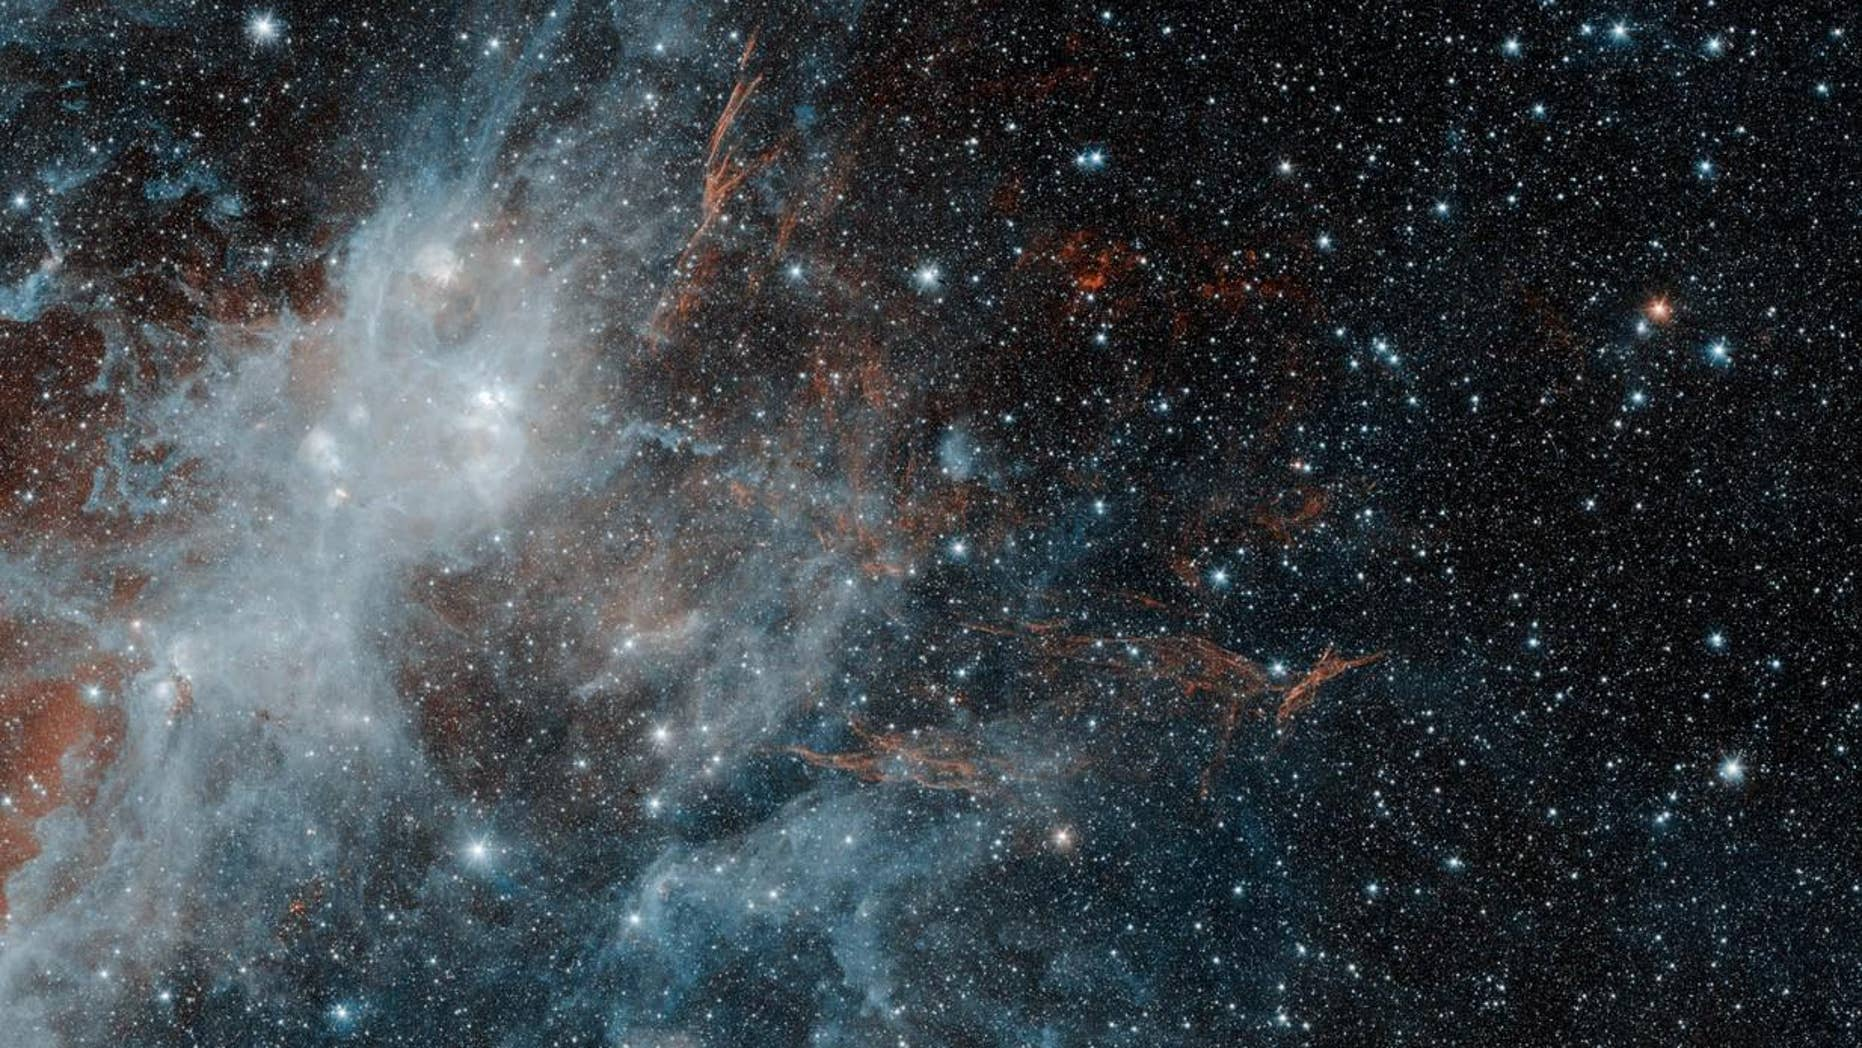 The supernova remnant HBH 3 glows with infrared light in this photo from NASA's Spitzer Space Telescope. Infrared light with a wavelength of 3.6 microns is shown in blue, while lower-energy infrared light with a wavelength of 4.5 microns is shown in red. Spitzer captured this image in May 2010, and NASA released it on Aug. 2, 2018.